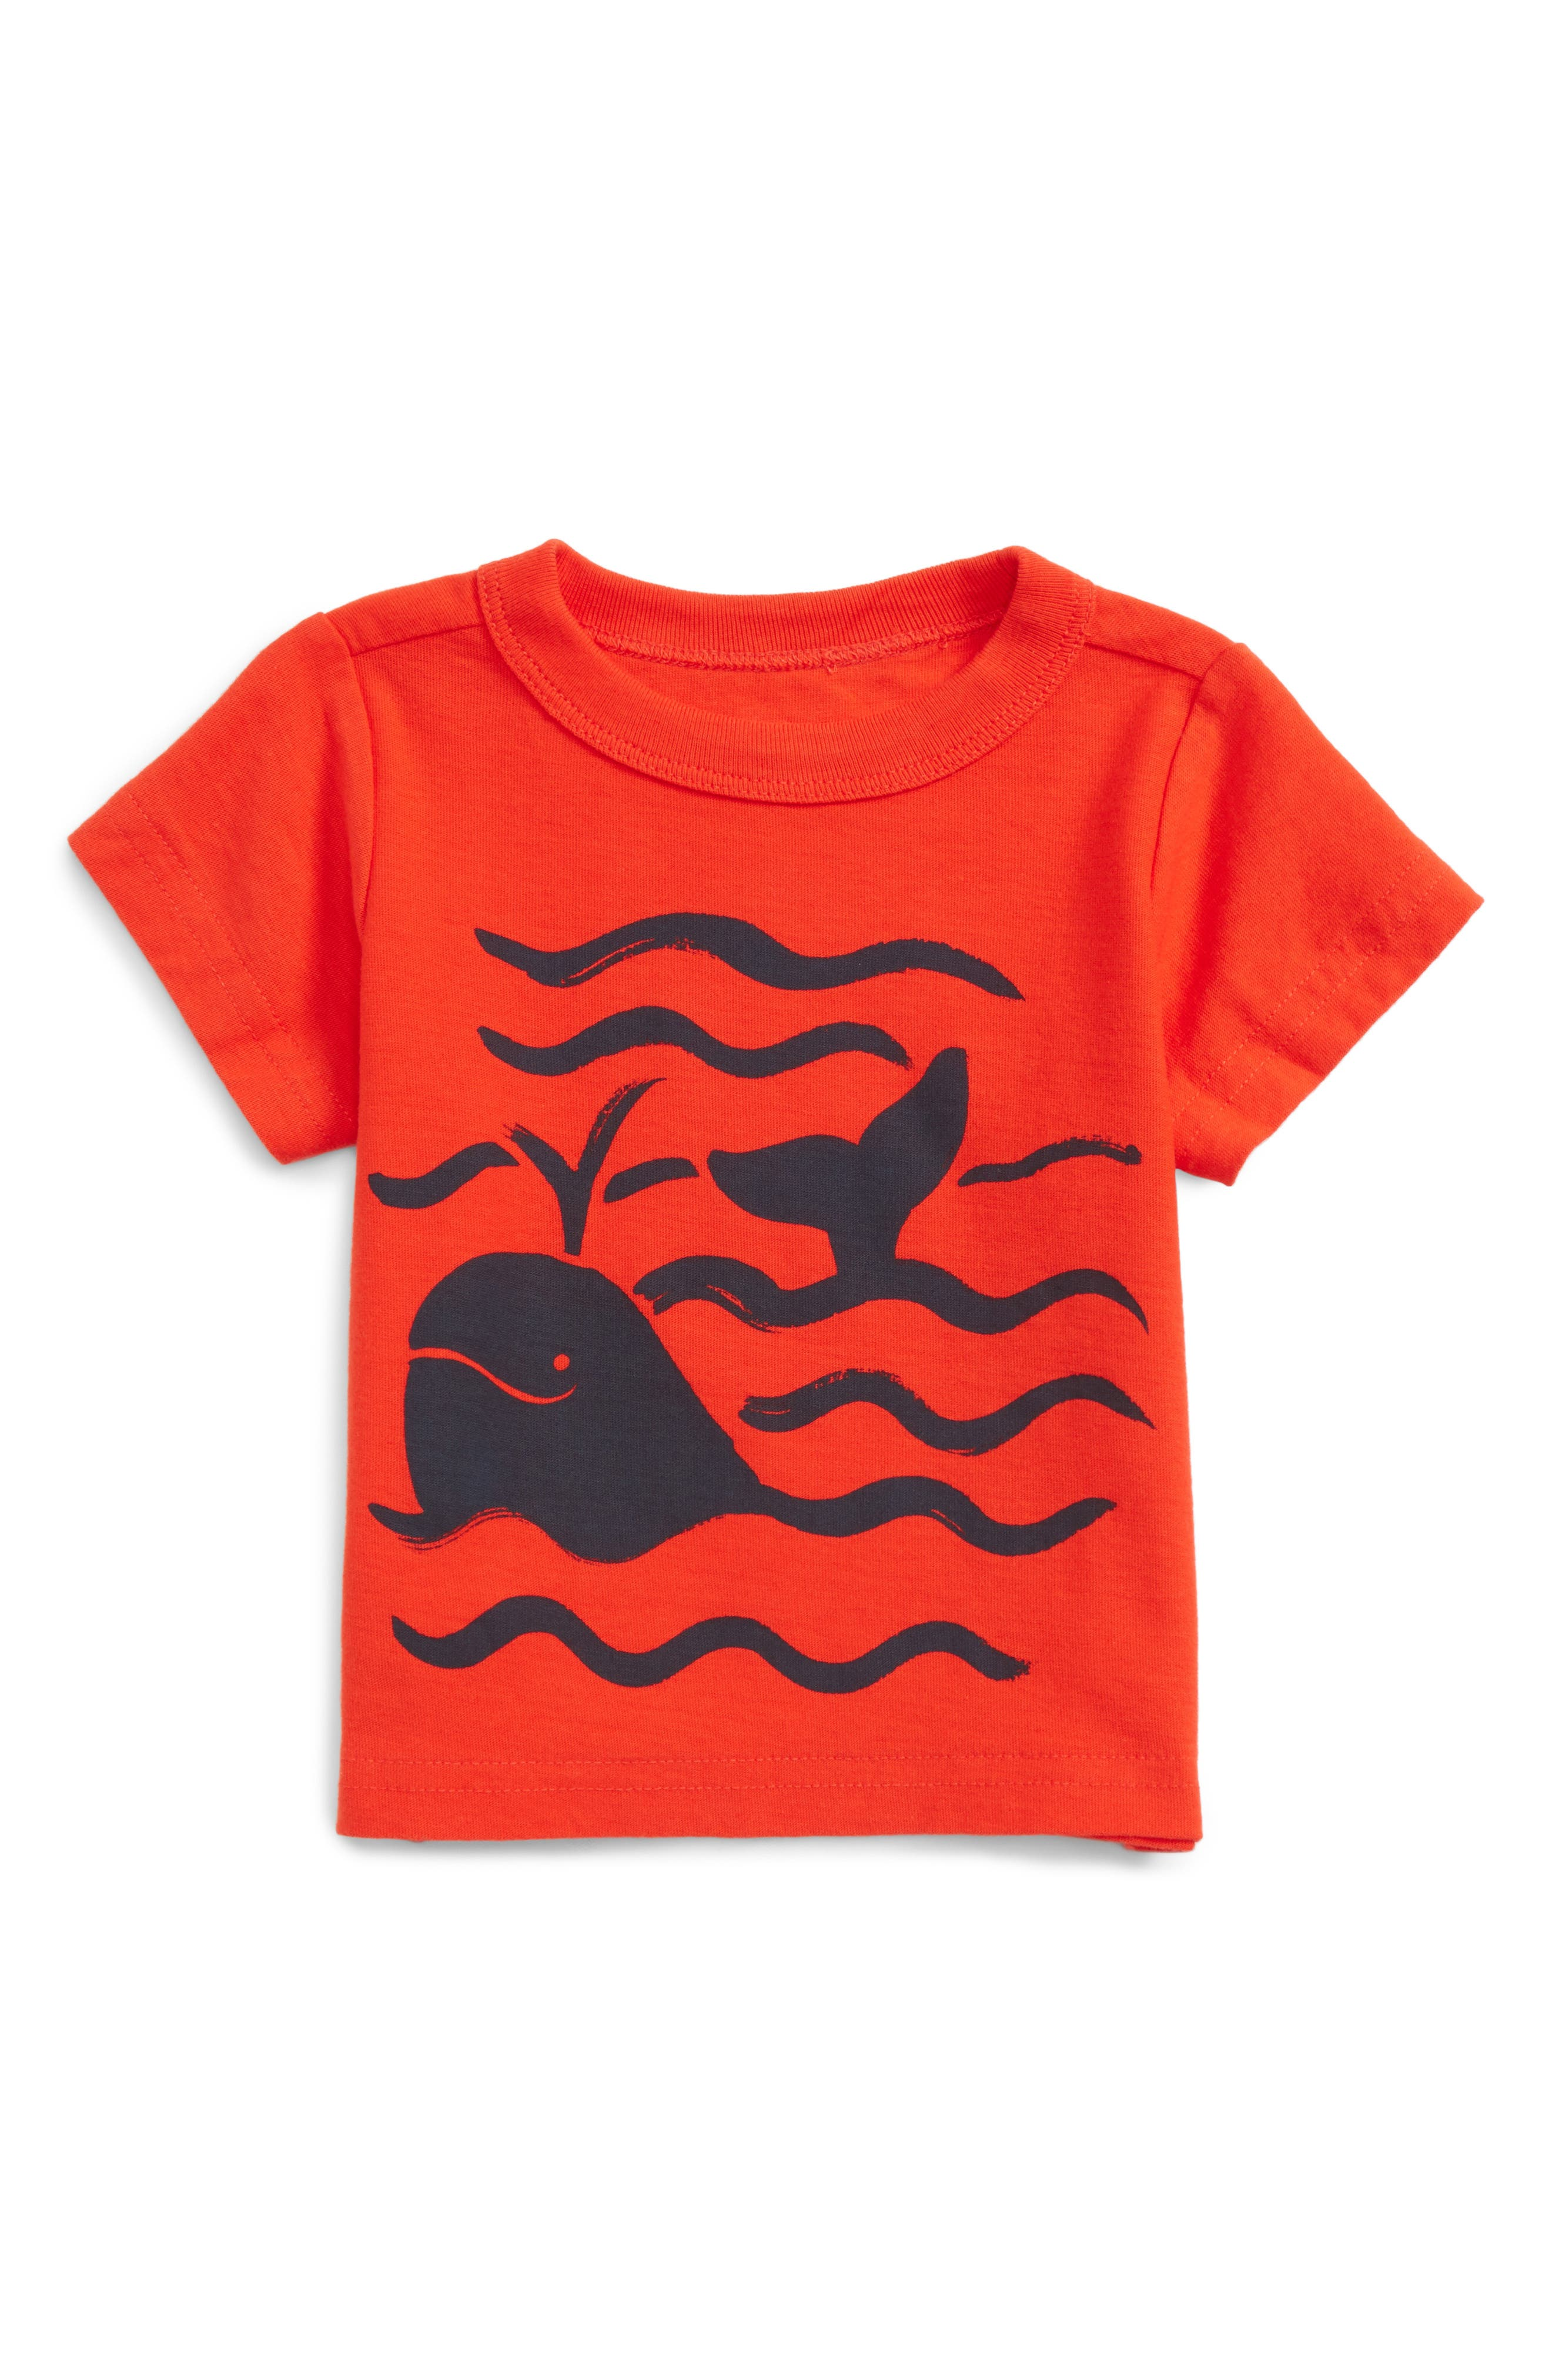 Tea Collection The Minch Graphic T-Shirt (Baby Boys)